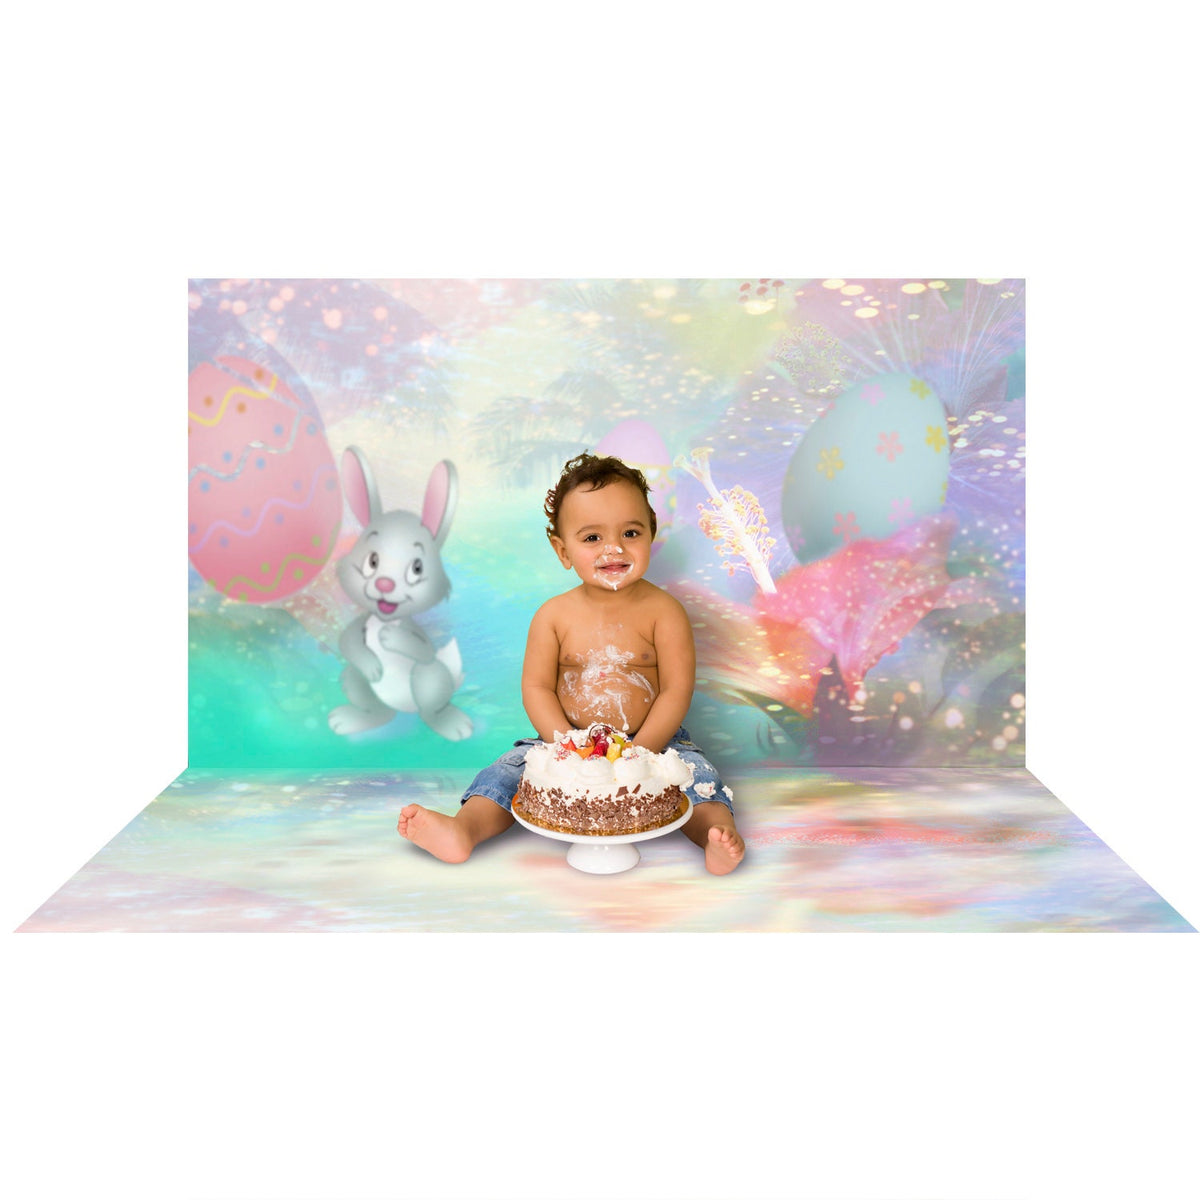 Bunny Banquet with Easter Eggs Photo Backdrop, Cake Smash, Baby Birthday, Infant Photography, Child's Easter Portrait Photo Backdrop Alba Backgrounds 49.00 USD